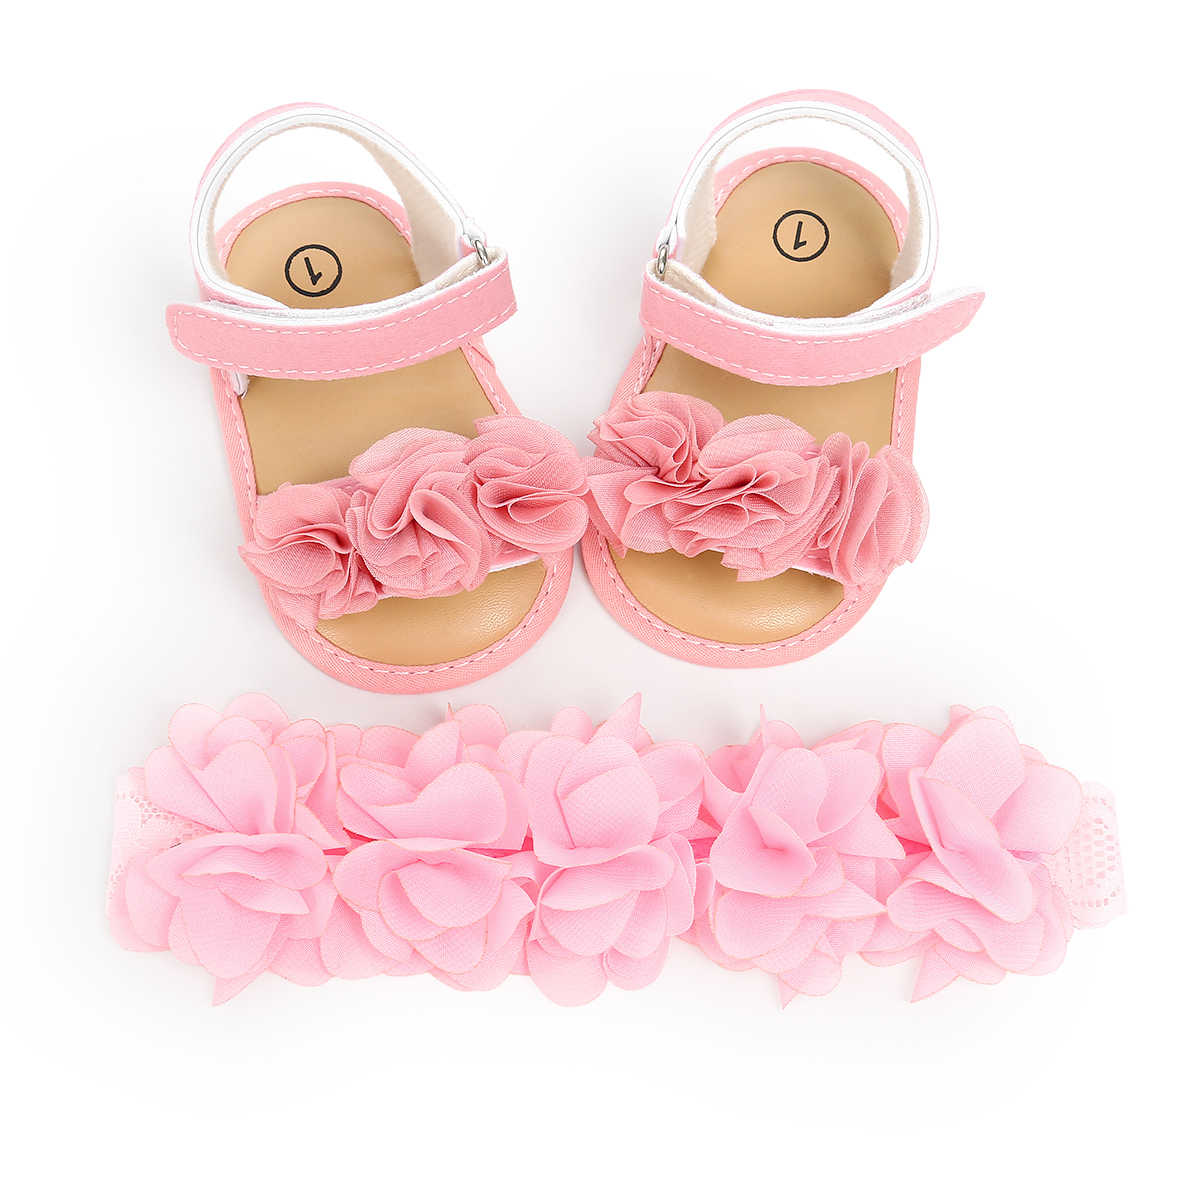 Princess Cute Newborn Baby Girls Flower Sandals Summer Casual Soft Crib Shoes+Headbands 2pcs First Prewalker Beach Sandals